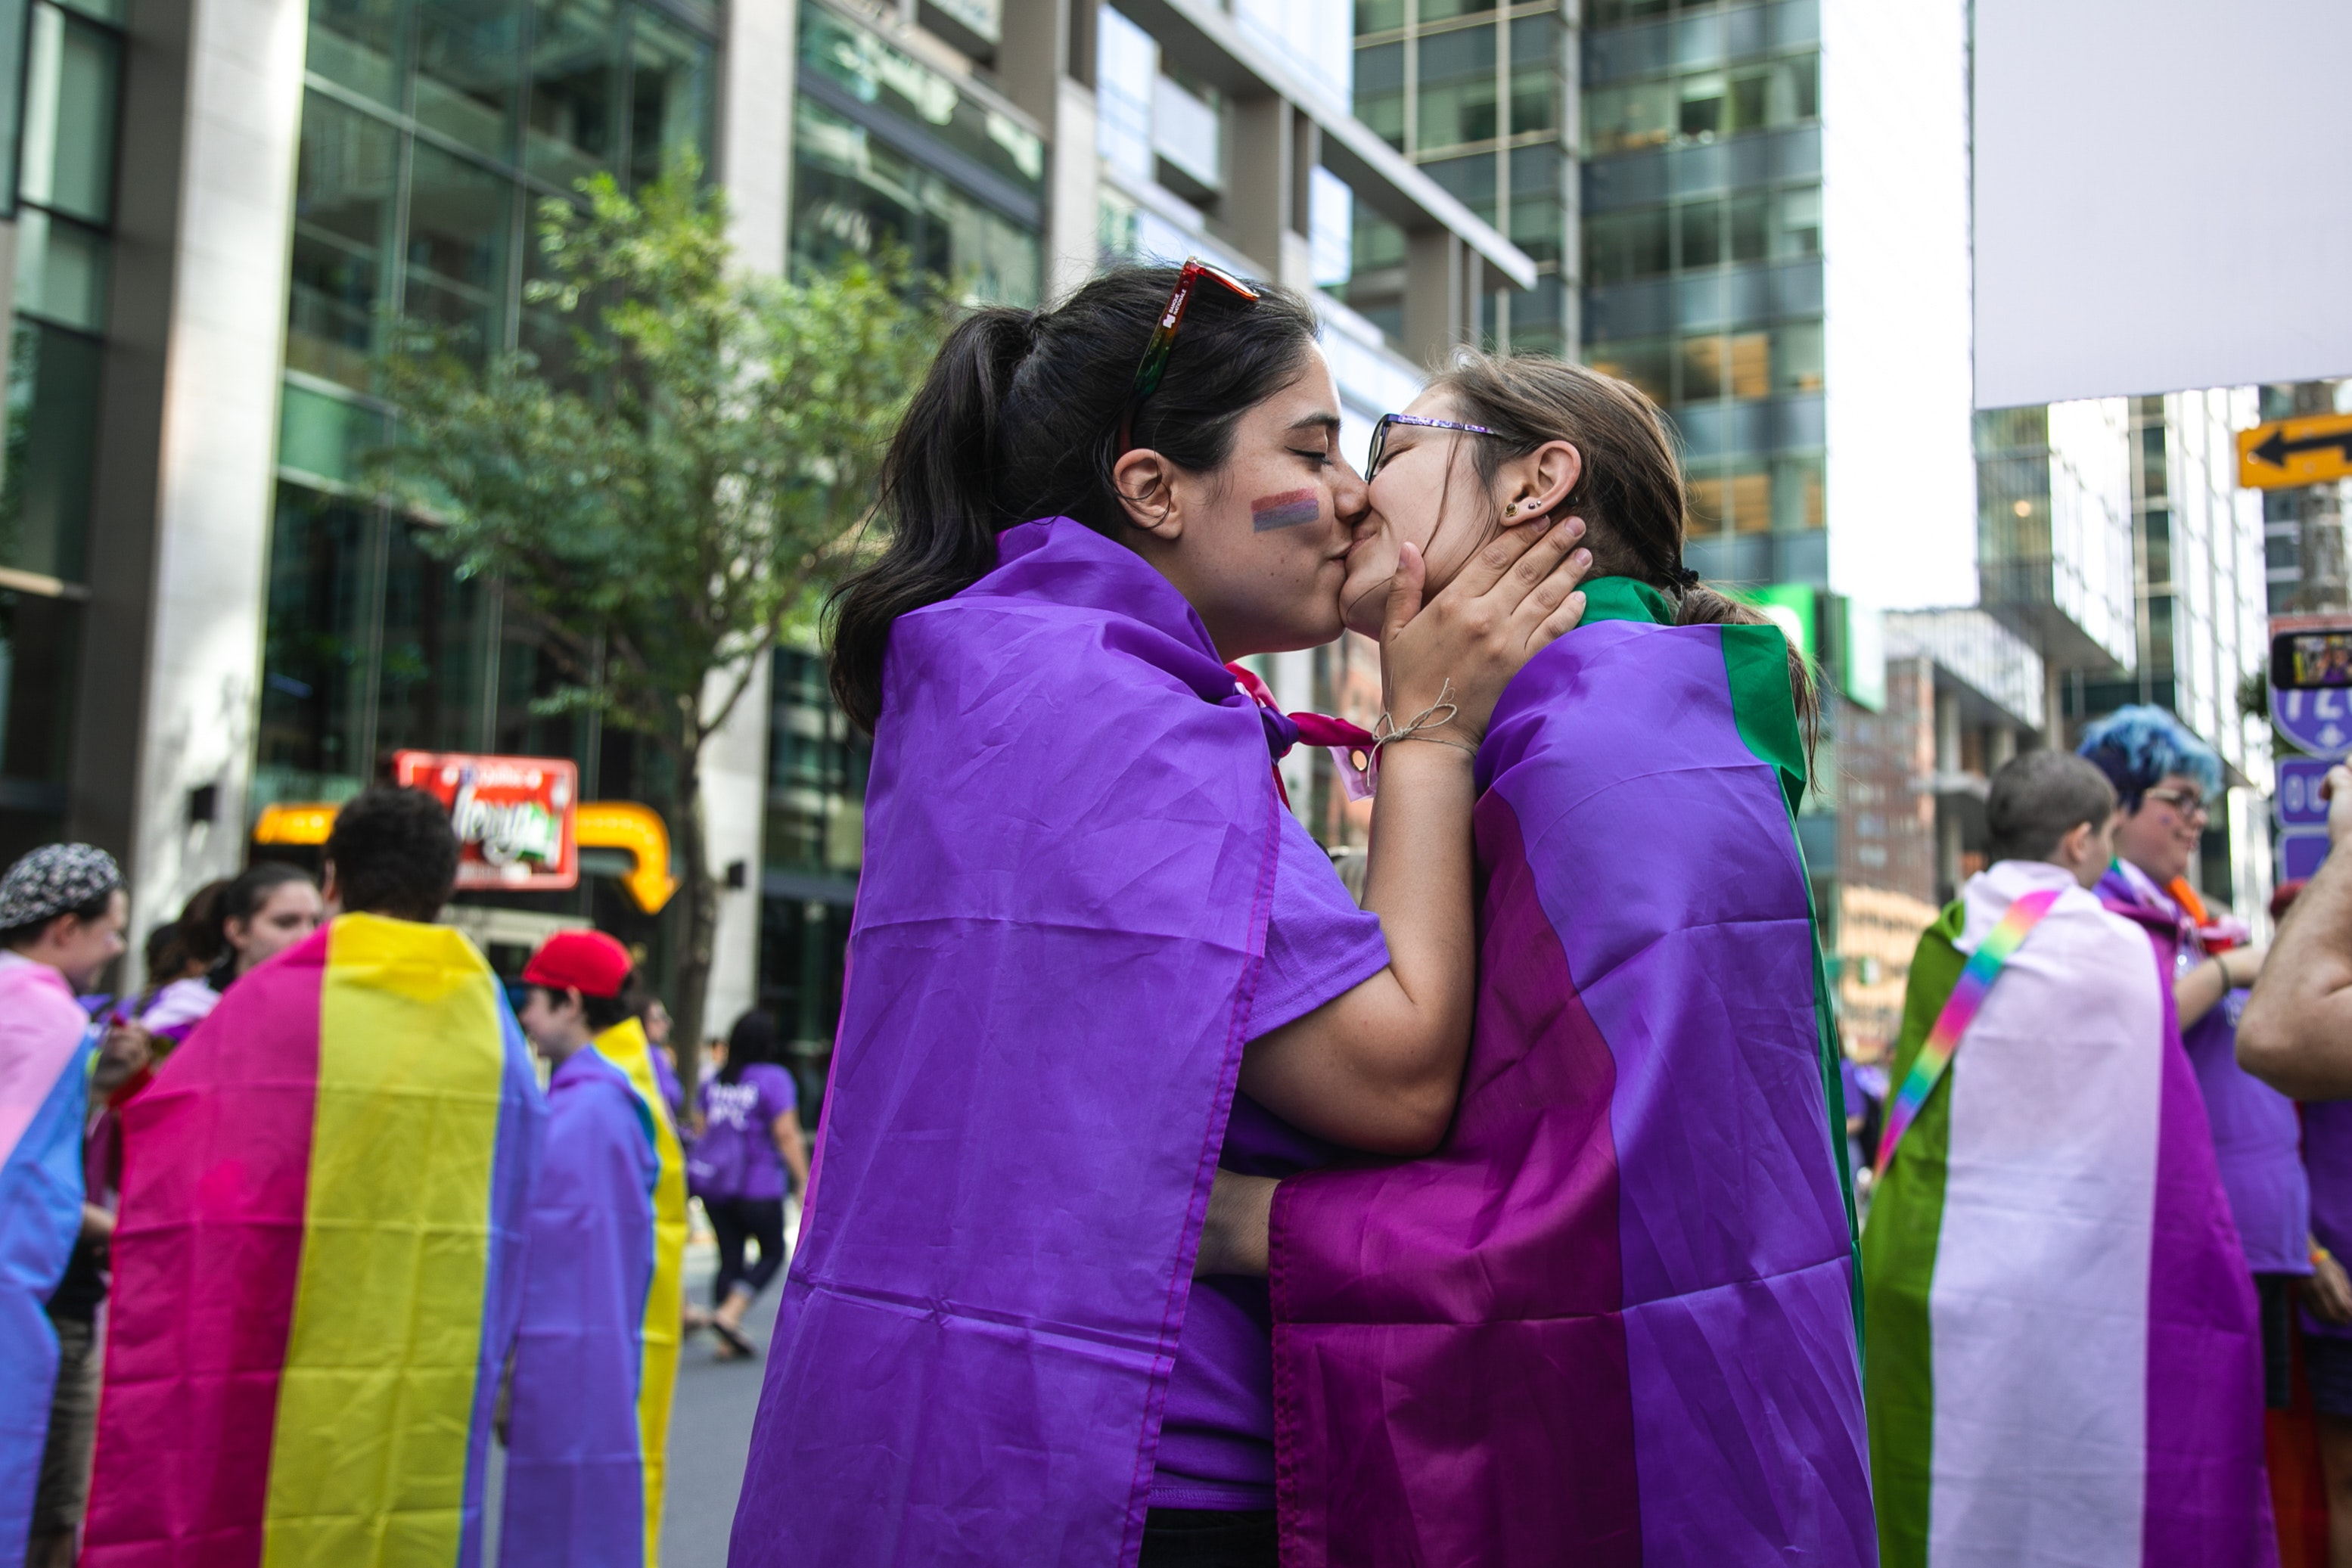 Image of two young women with long hair in the middle of the street during a pride parade, both wearing the bi flags as blankets kissing while one has her hands on the other girls' face.